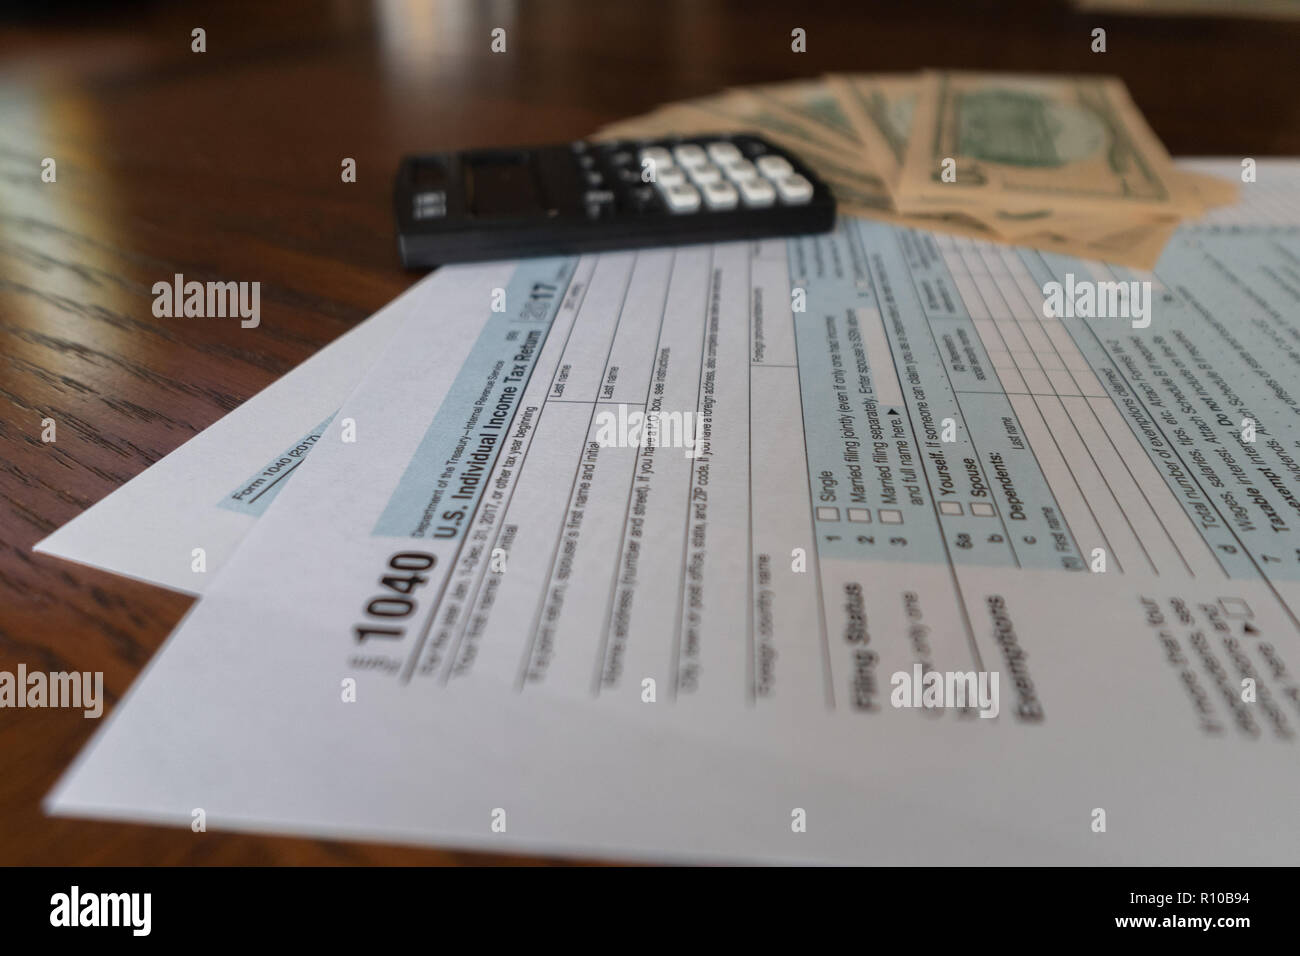 Us Tax Form And Calculator With Used To Calculate Tax Refund Stock